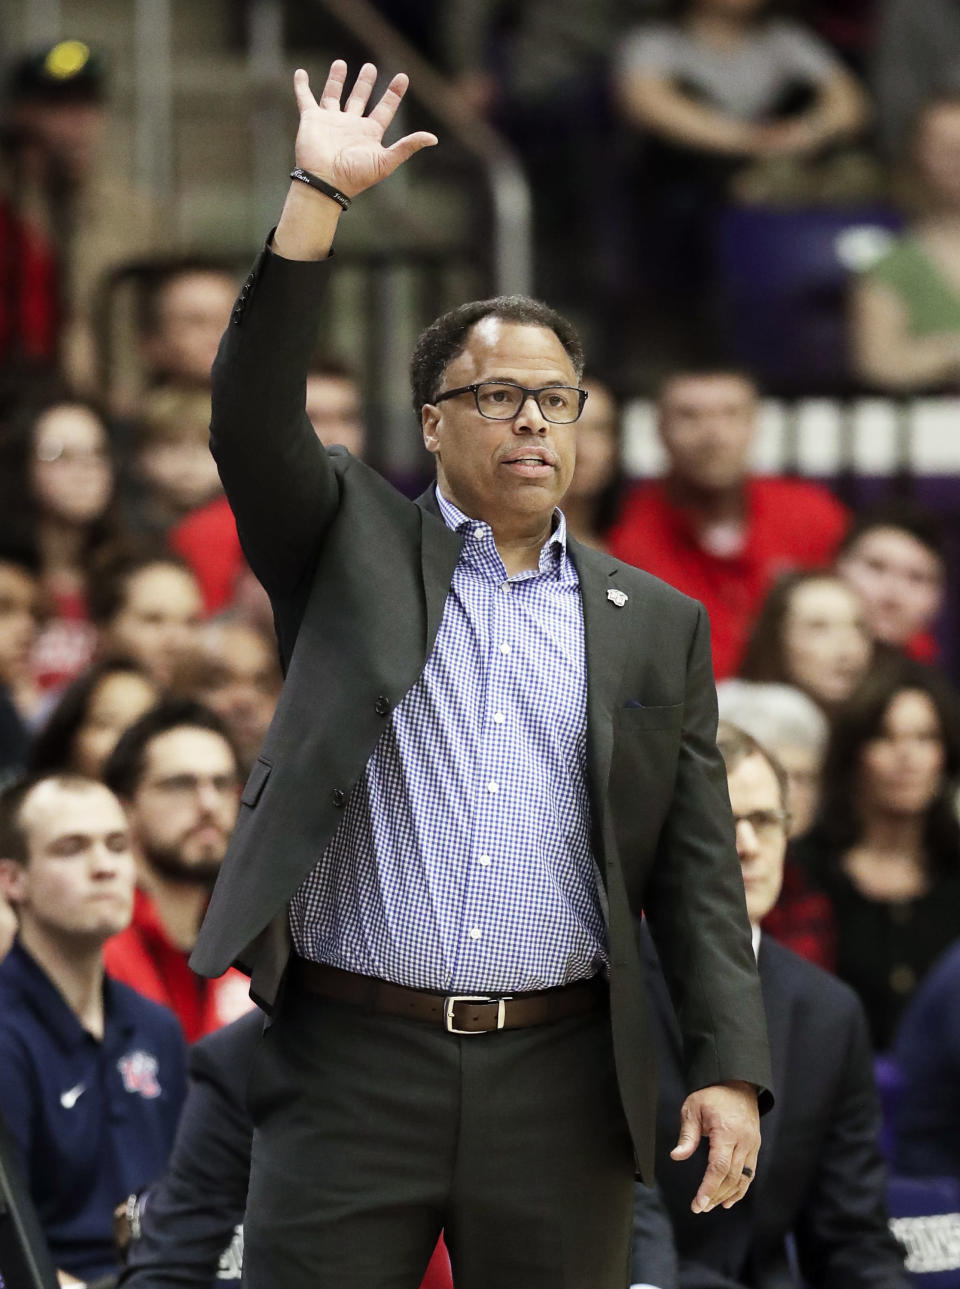 Liberty head coach Ritchie McKay signals to his players in the first half of the Atlantic Sun NCAA college basketball tournament championship game against Lipscomb Sunday, March 10, 2019, in Nashville, Tenn. (AP Photo/Mark Humphrey)